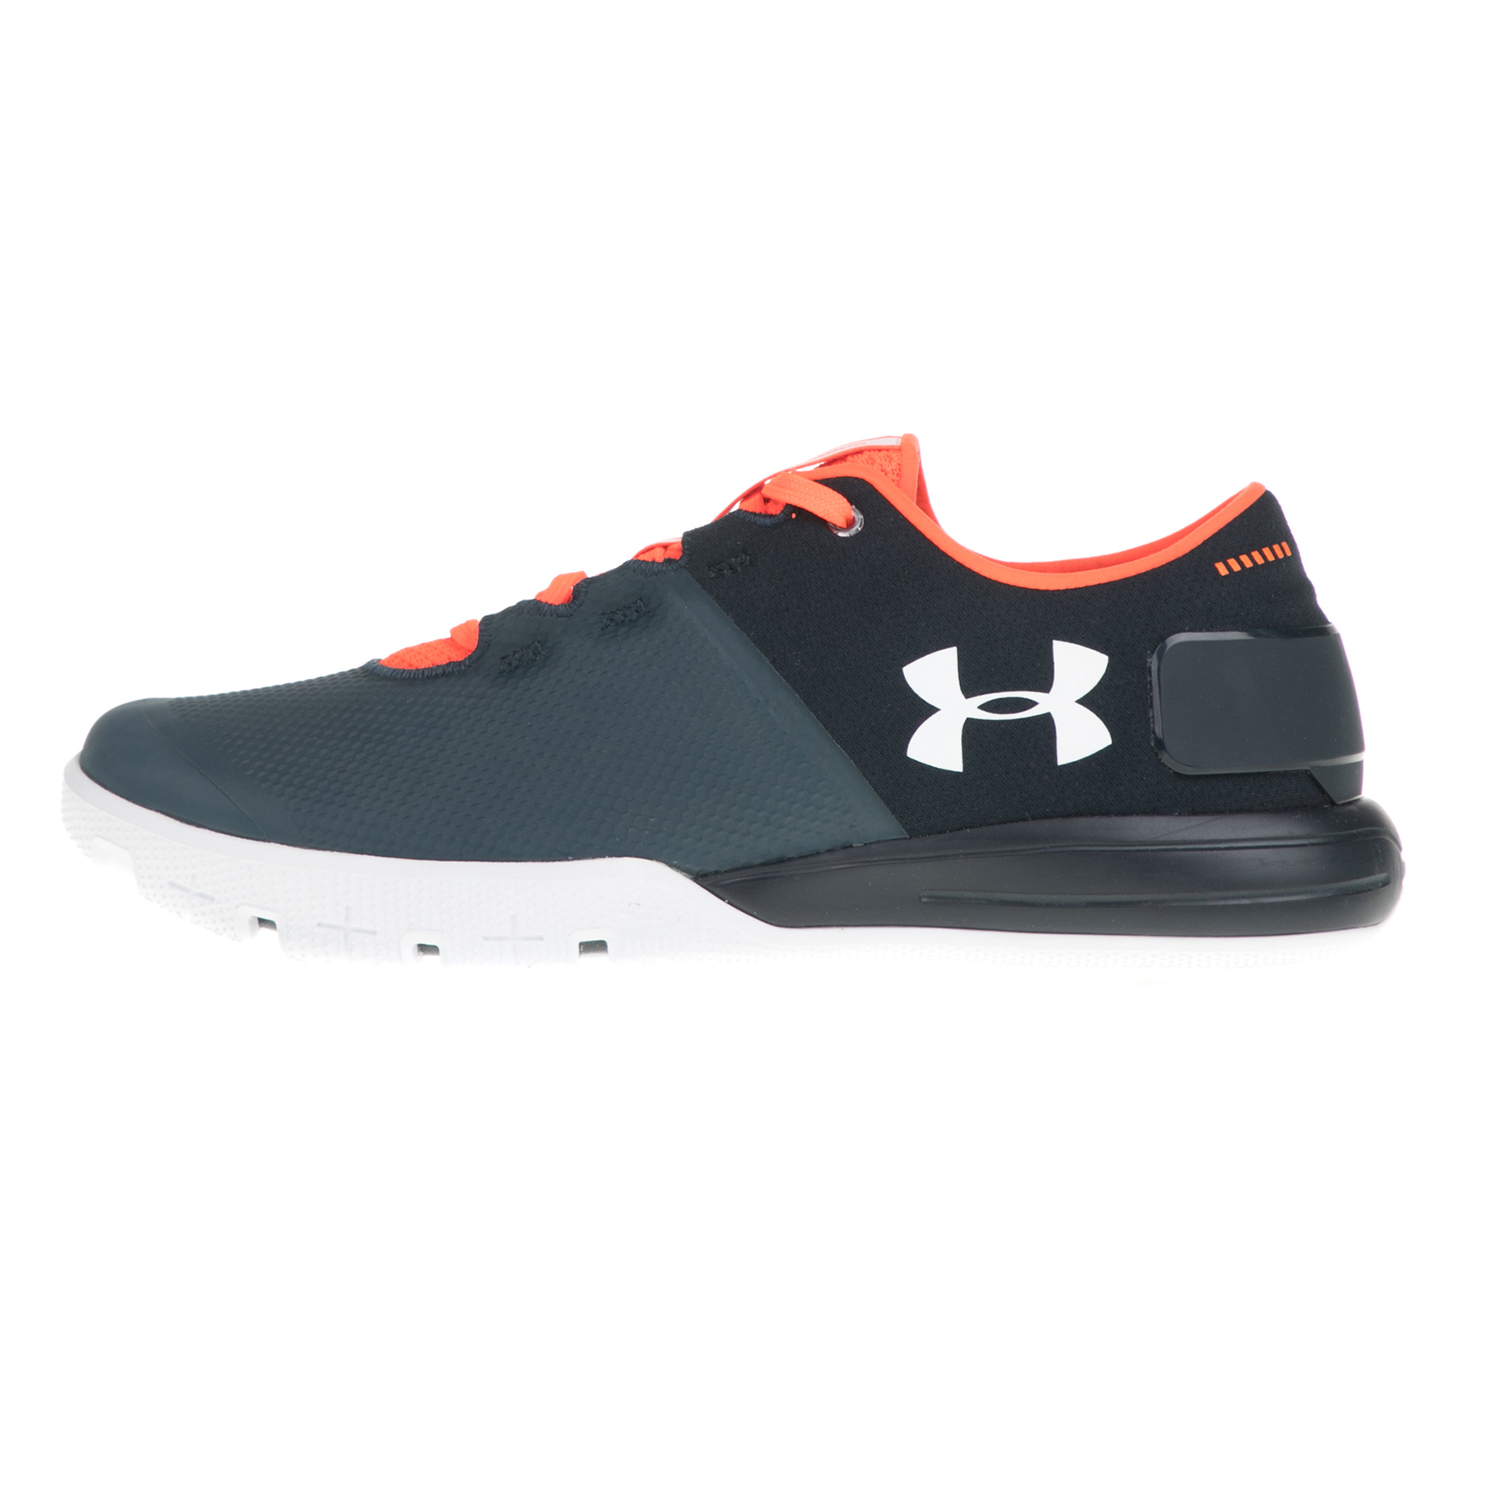 UNDER ARMOUR – Ανδρικά αθλητικά παπούτσια UNDER ARMOUR Charged Ultimate TR 2.0 μαύρα-γκρι